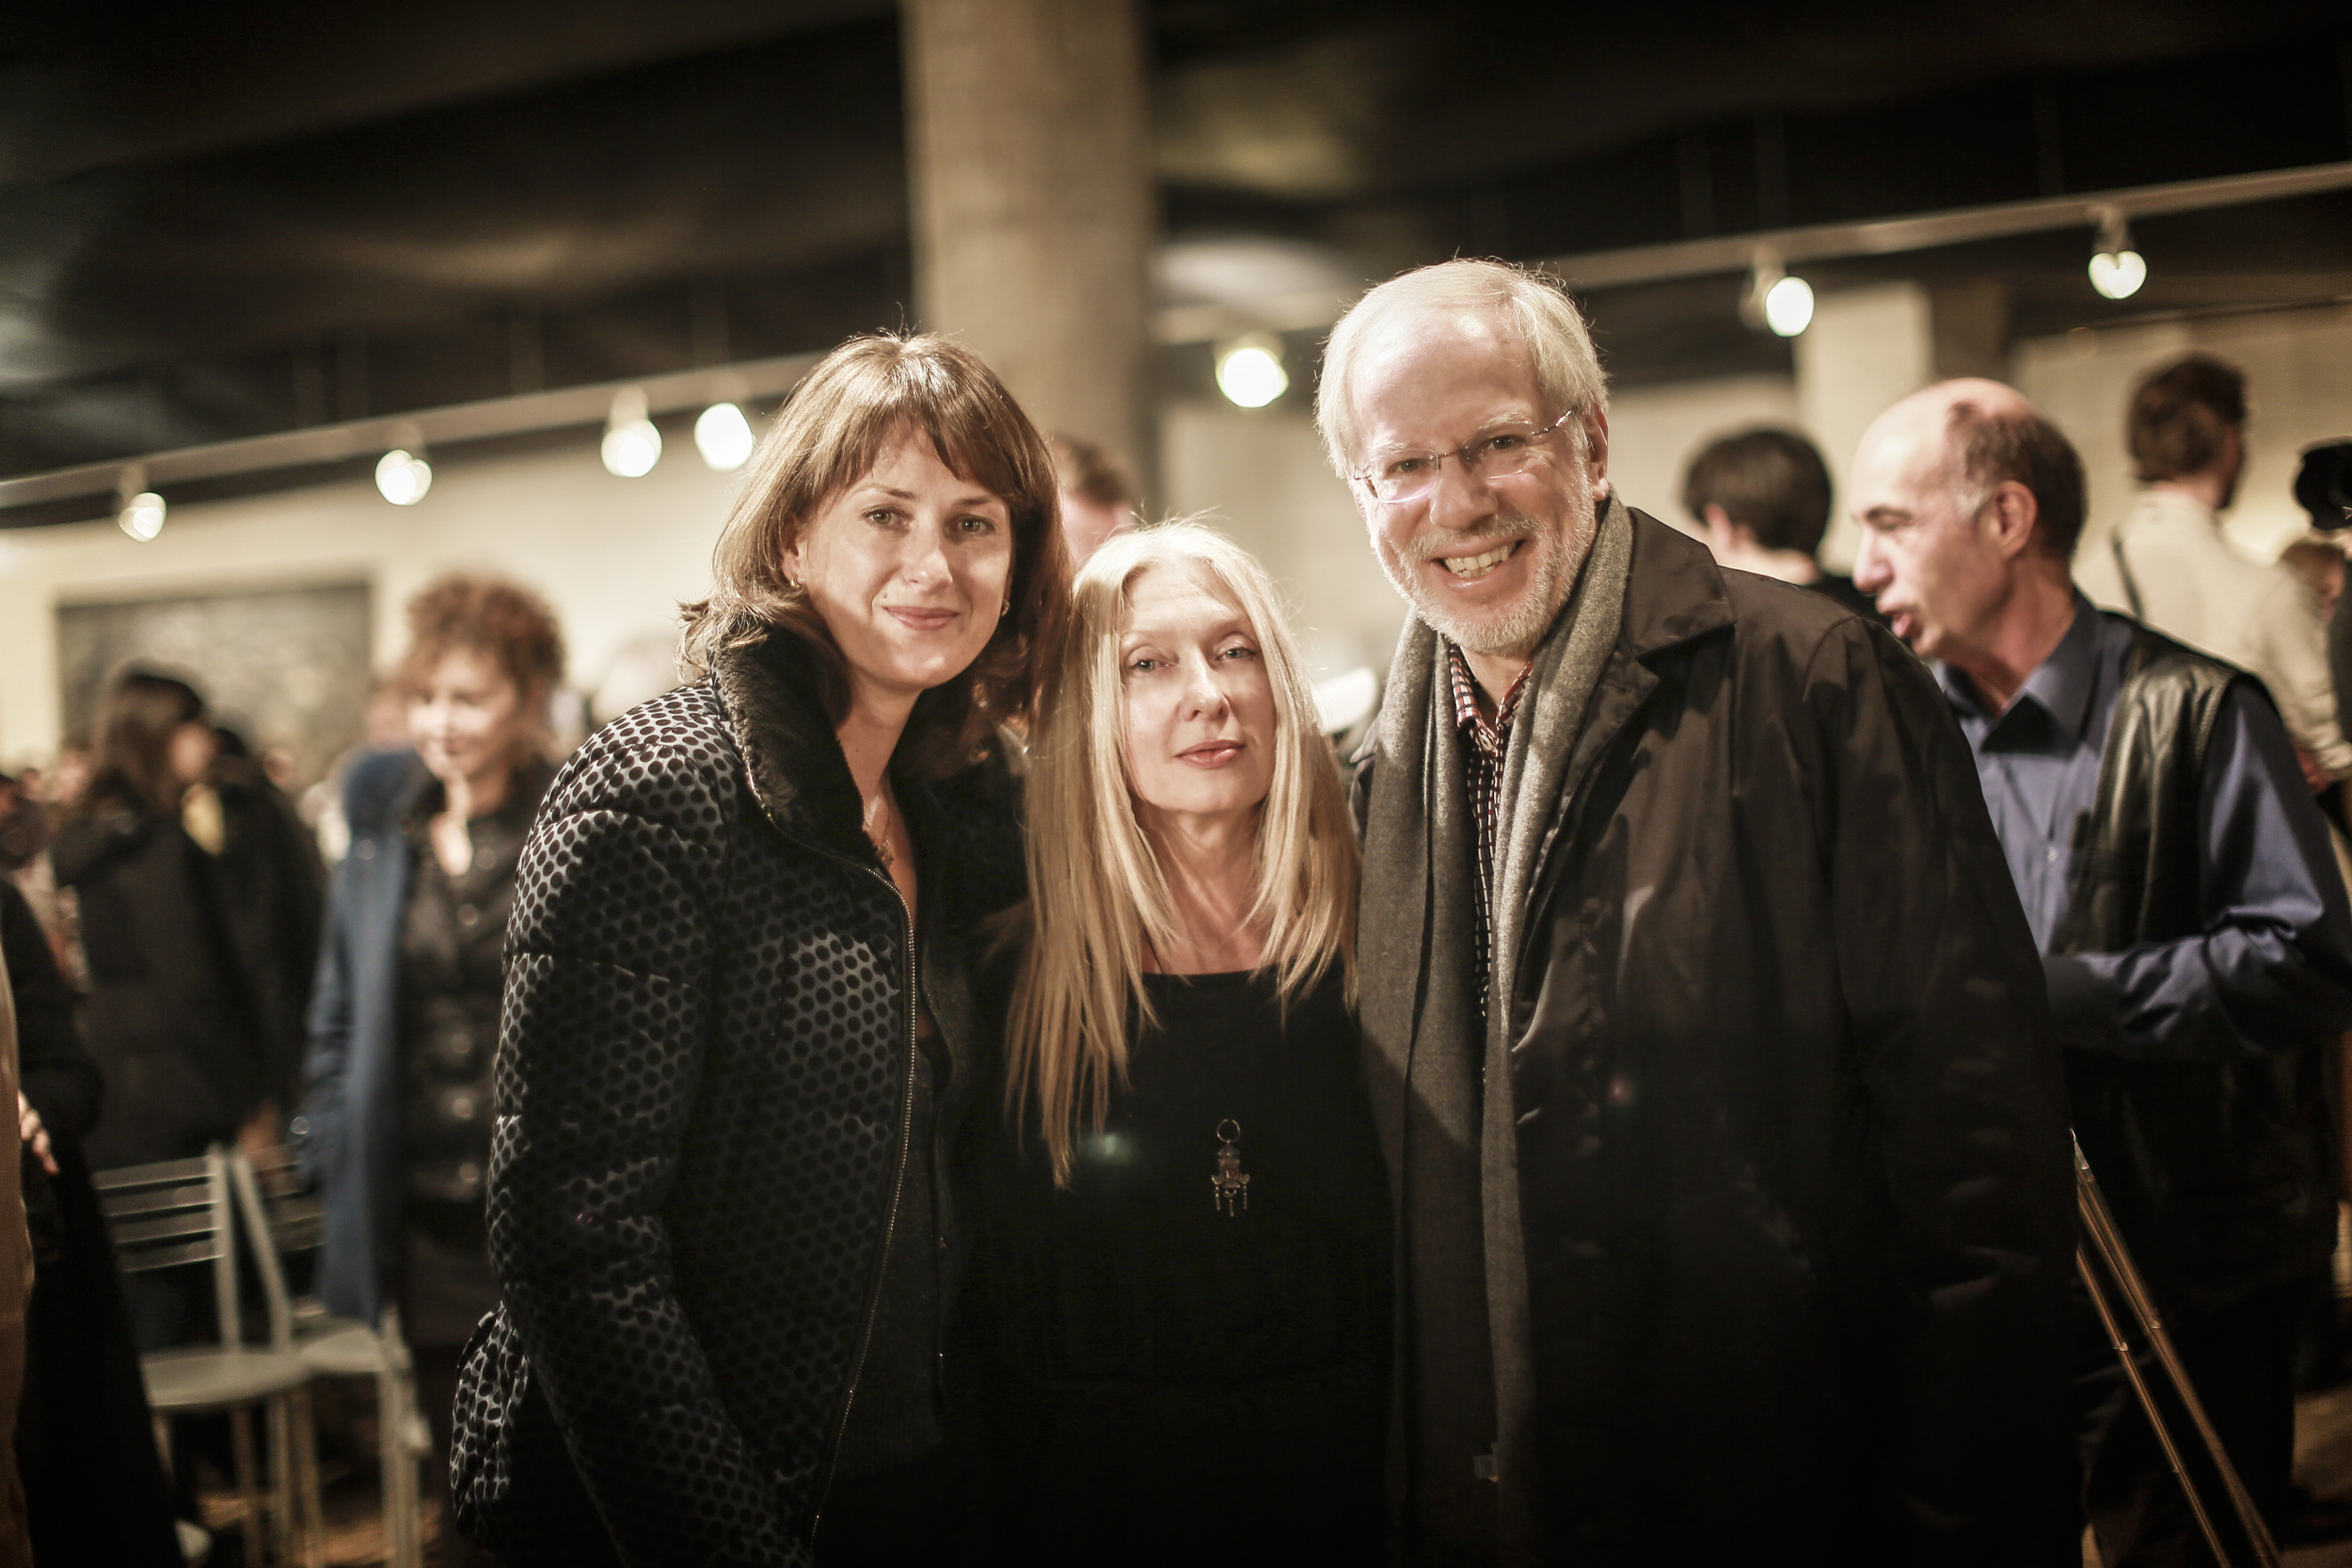 Victoria Polev  á (center) with   Giedre Dirvanauskaite and Gidon Kremer after a performance of  Transforma  in Kiev on November 10, 2014. Photo: Tina Grach.